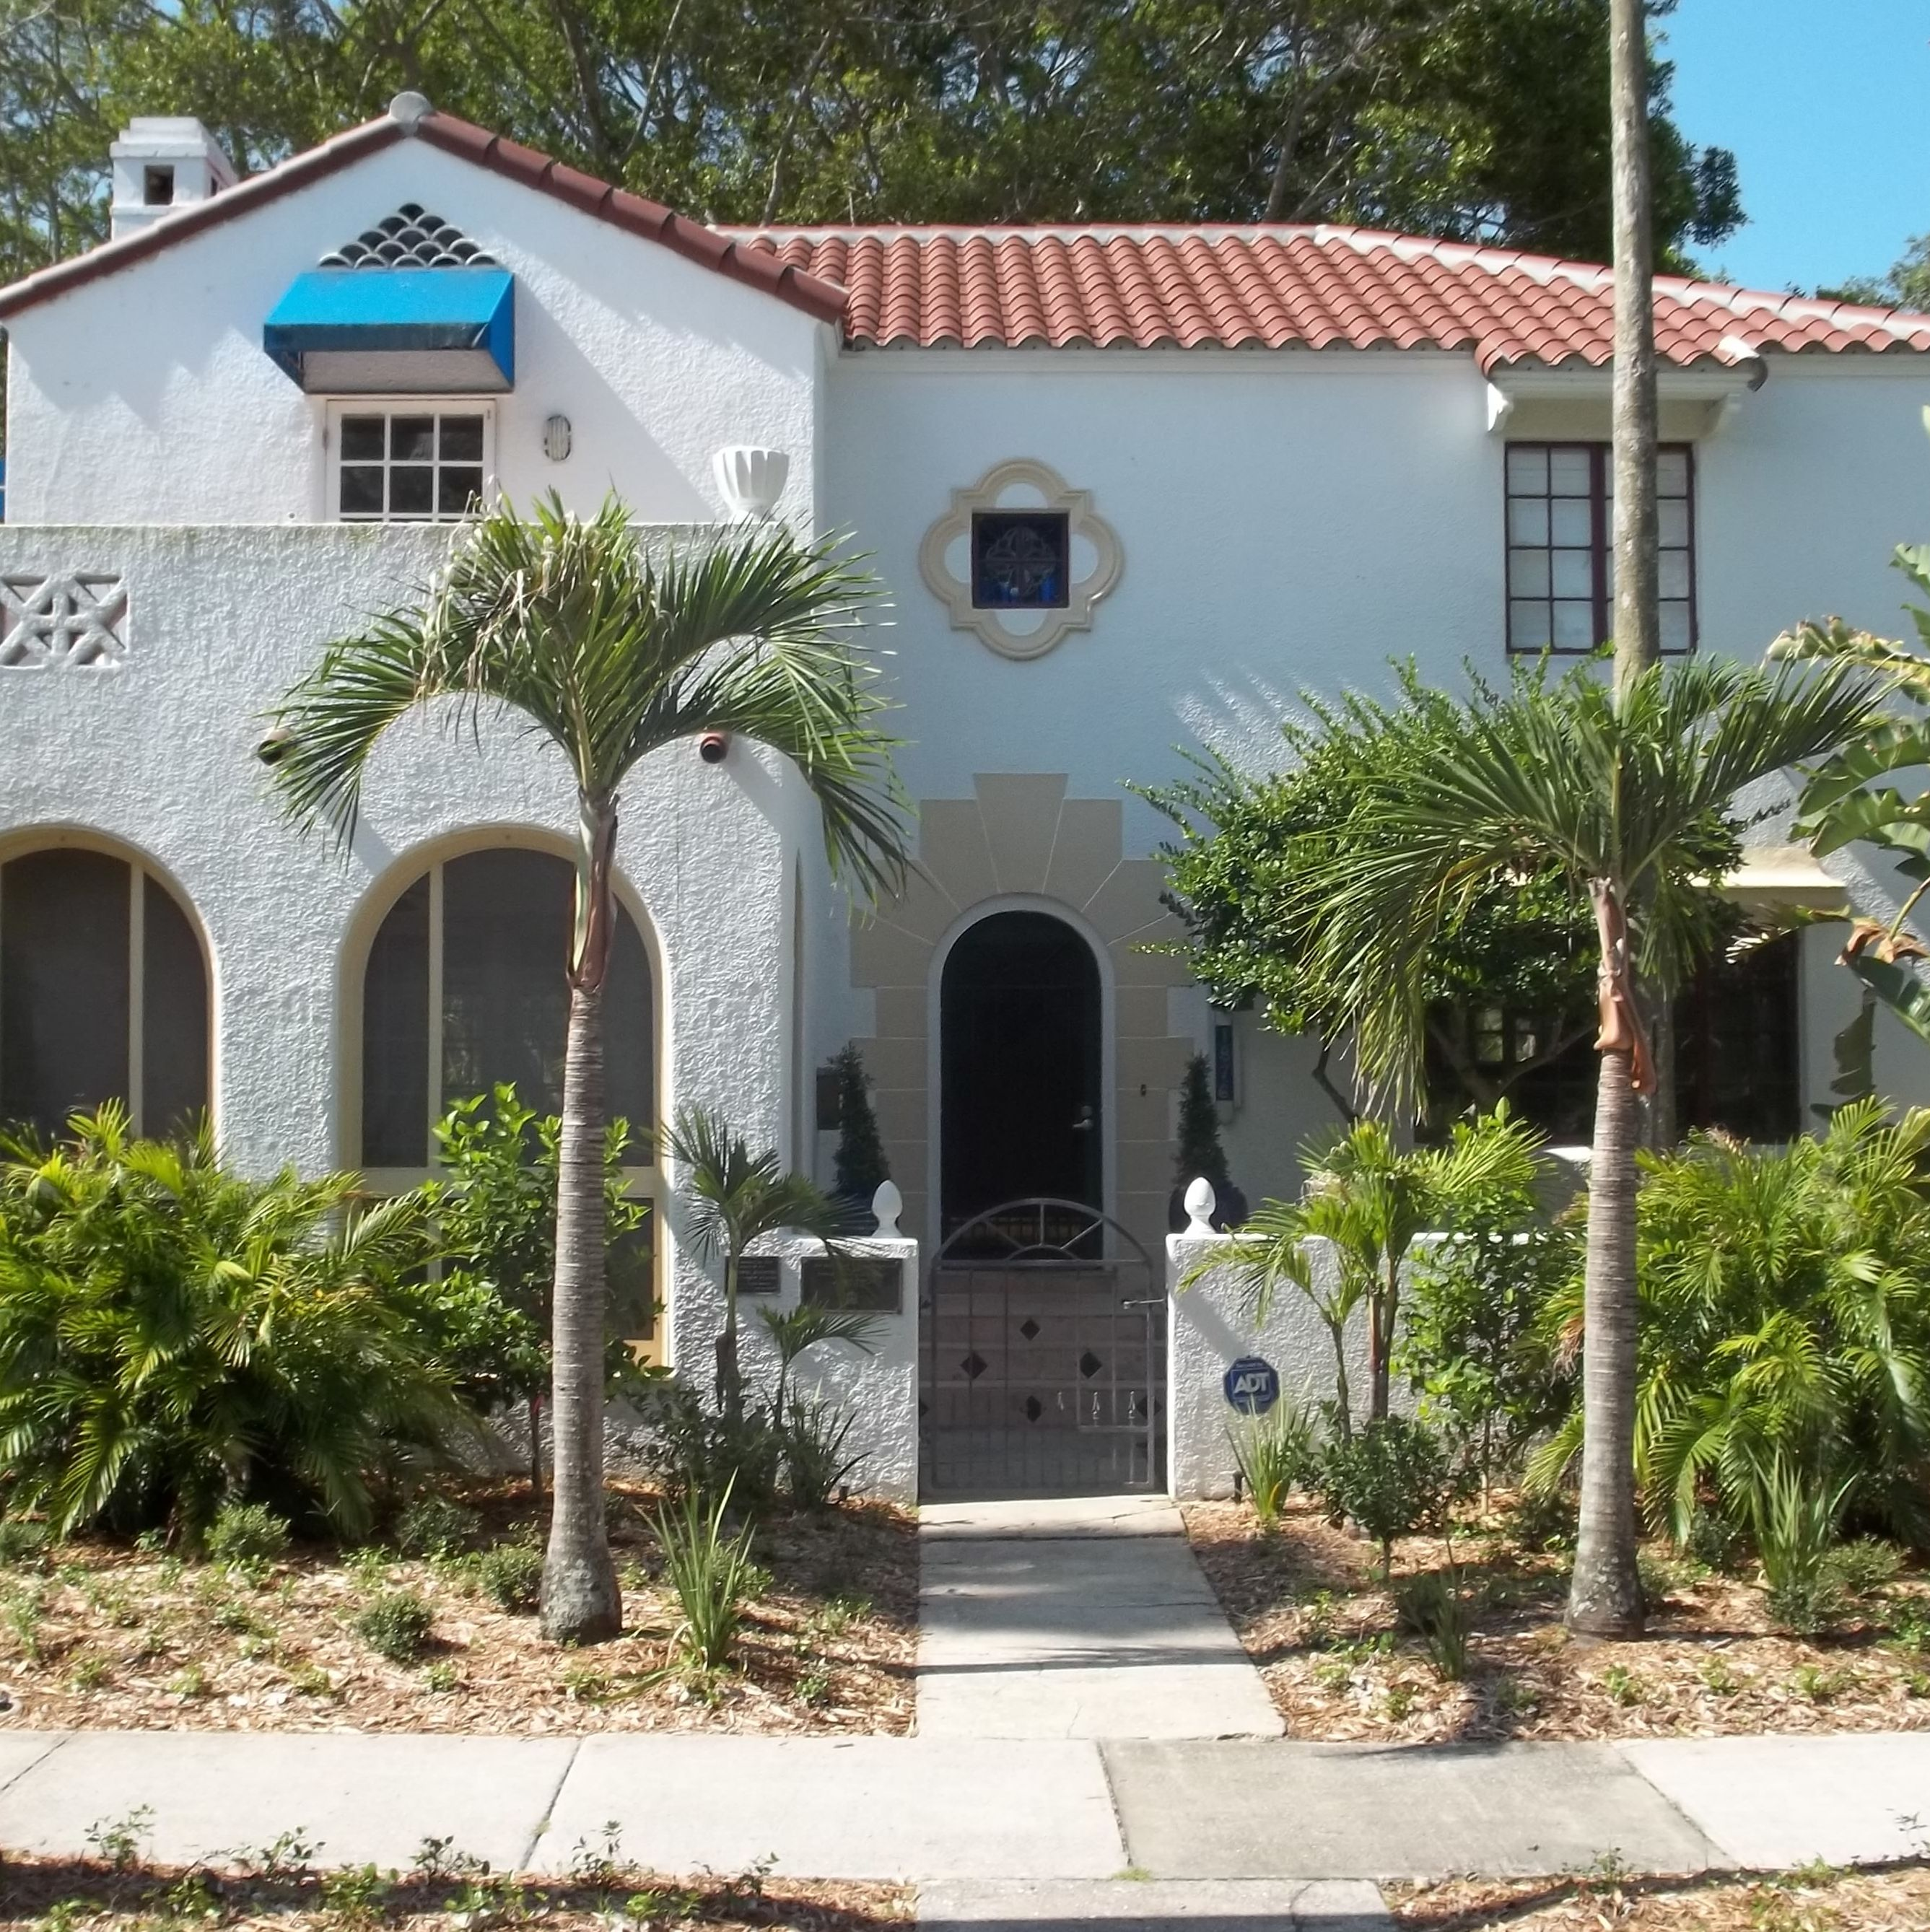 Dr. walter kennedy house ugk7wo